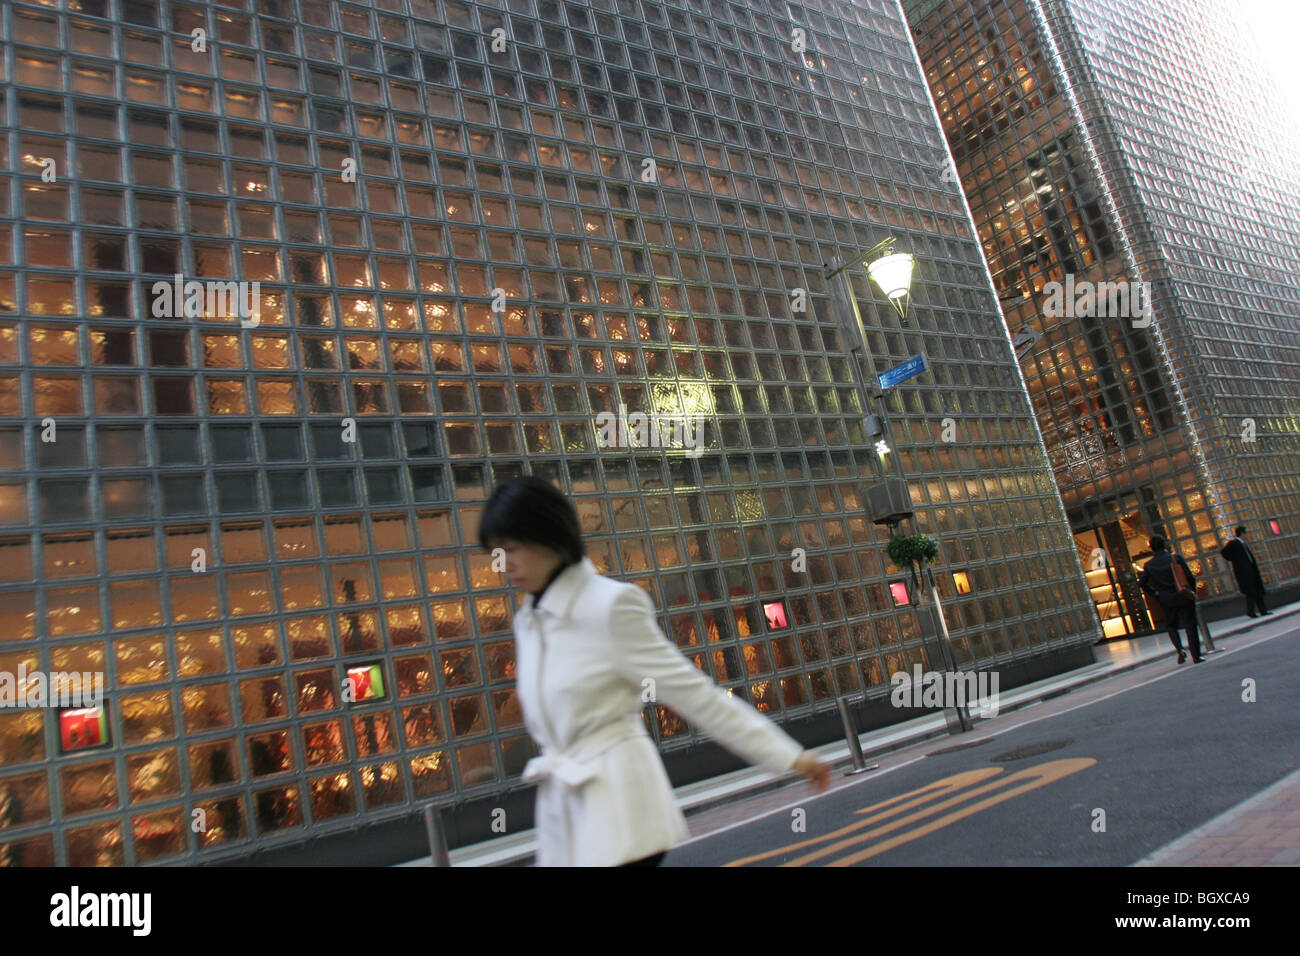 Hermes fashion boutique, designed by Renzo Piano, in the Ginza district, Tokyo, Japan, on Monday, Feb. 19, 2007. - Stock Image